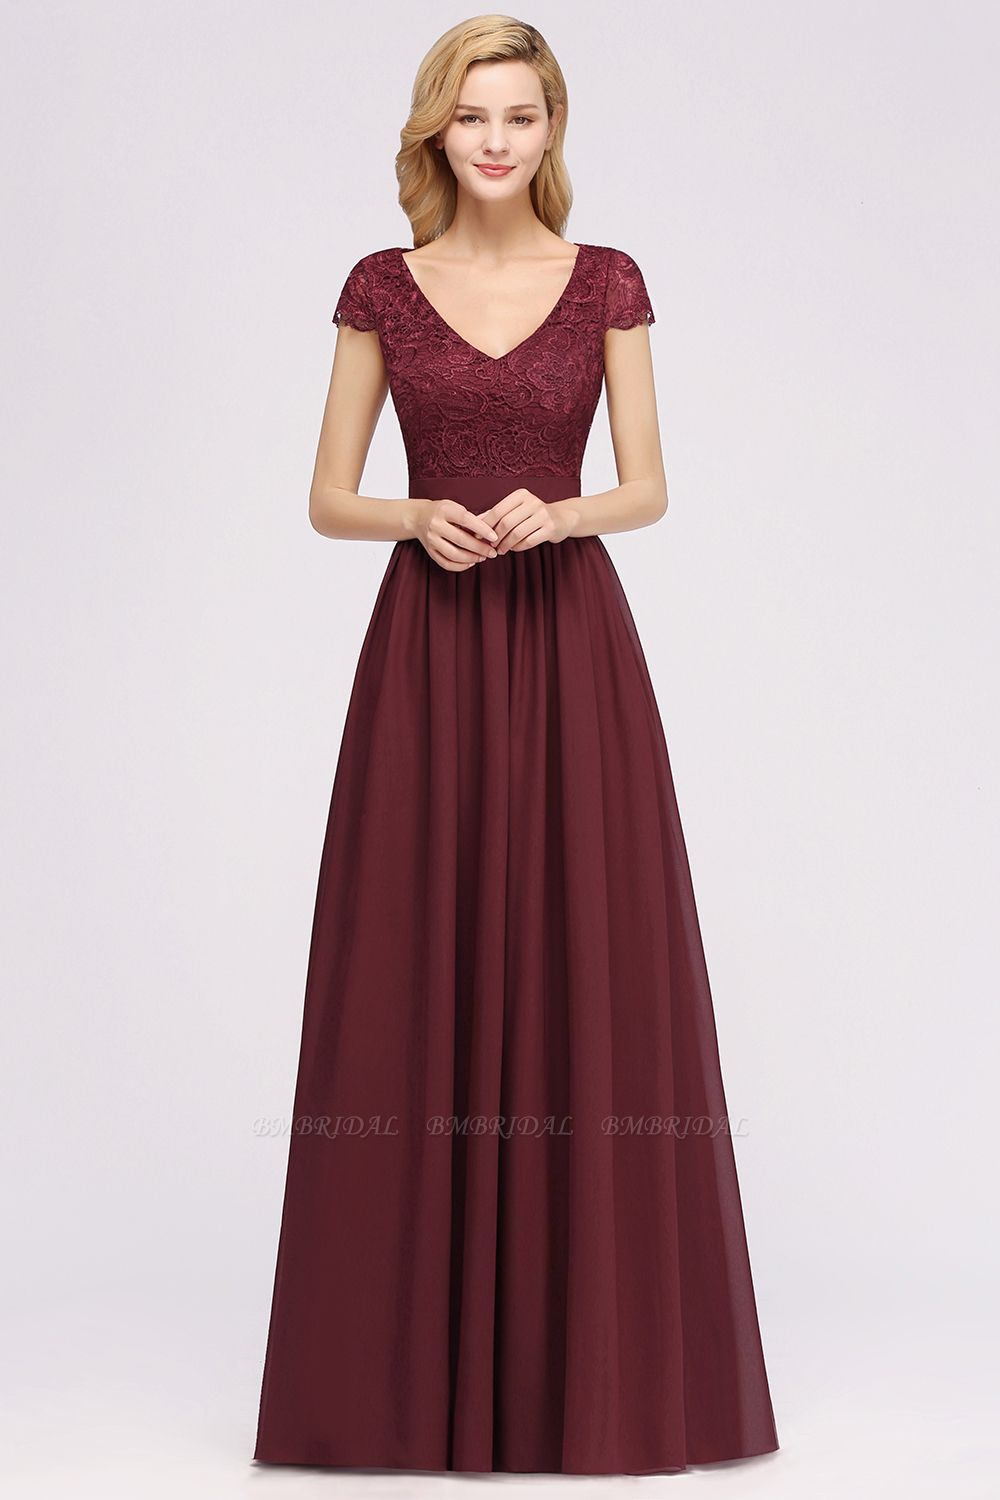 Elegant Lace Open-Back Long Burgundy Bridesmaid Dresses Online